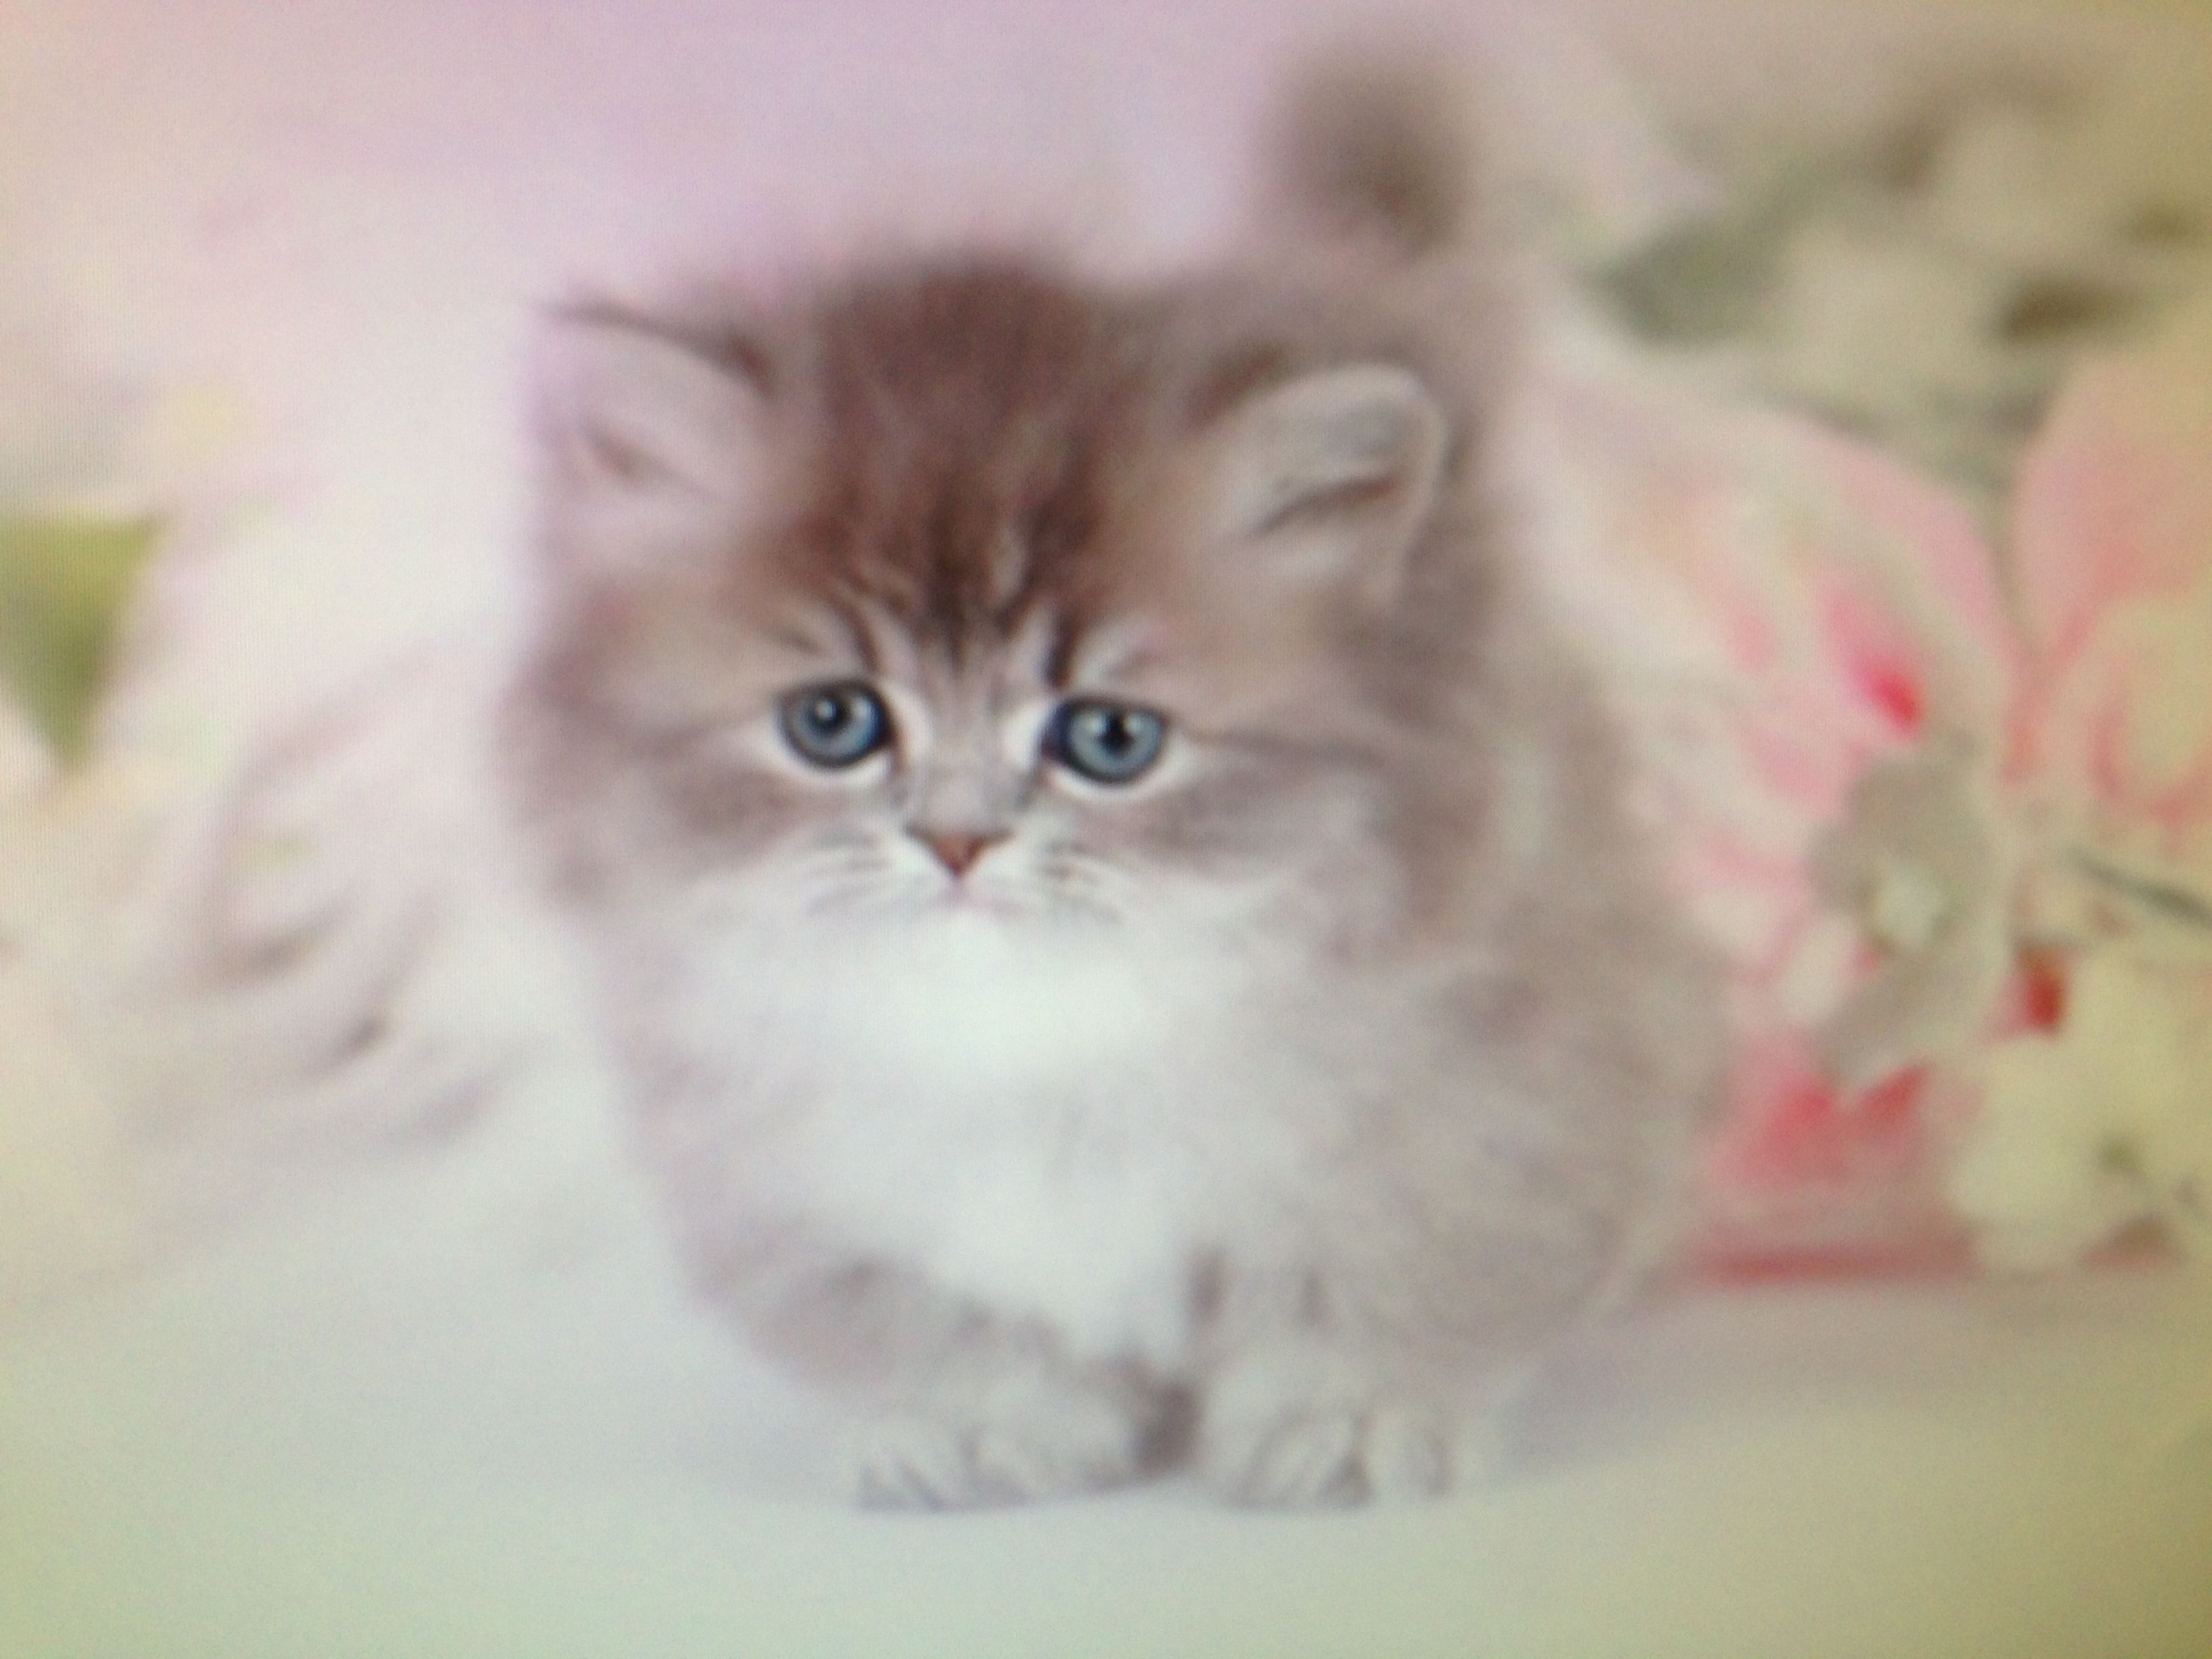 It s a teacup rug hugger Persian It s legs only grow to be 2